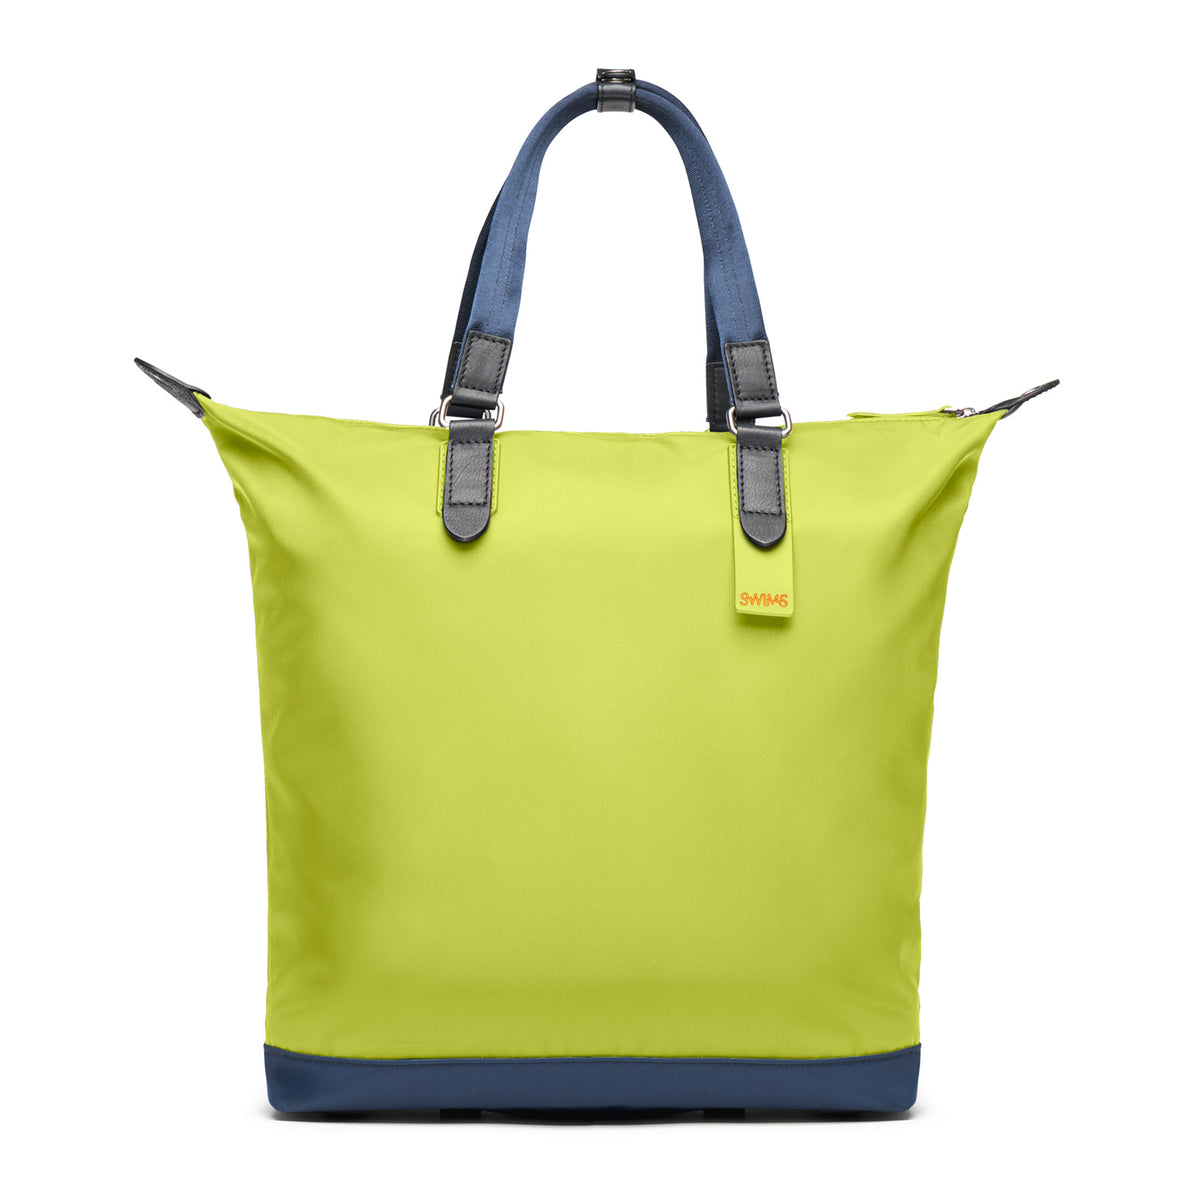 Tote - background::white,variant::Limeade